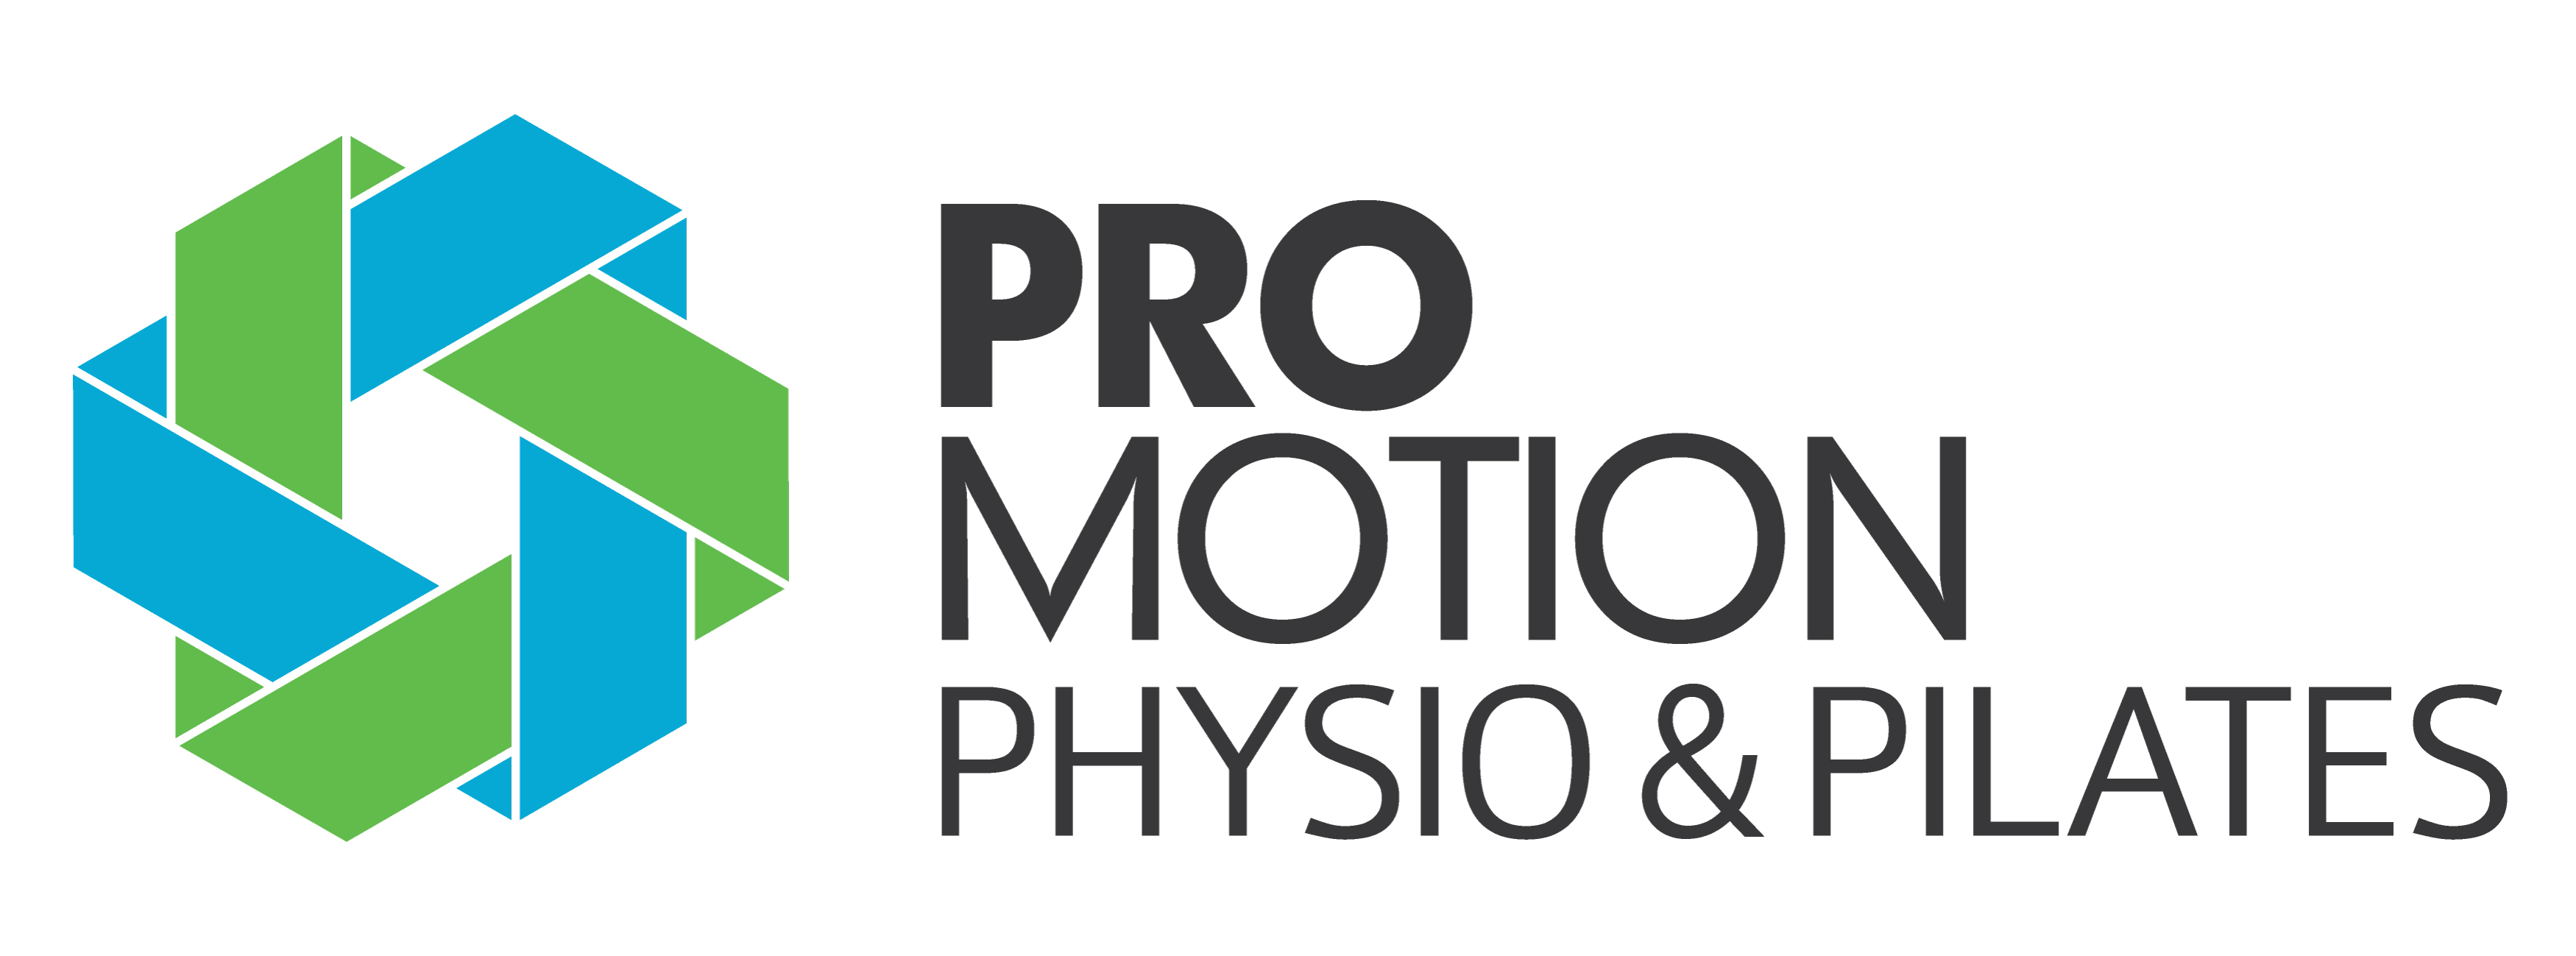 ProMotion Physio